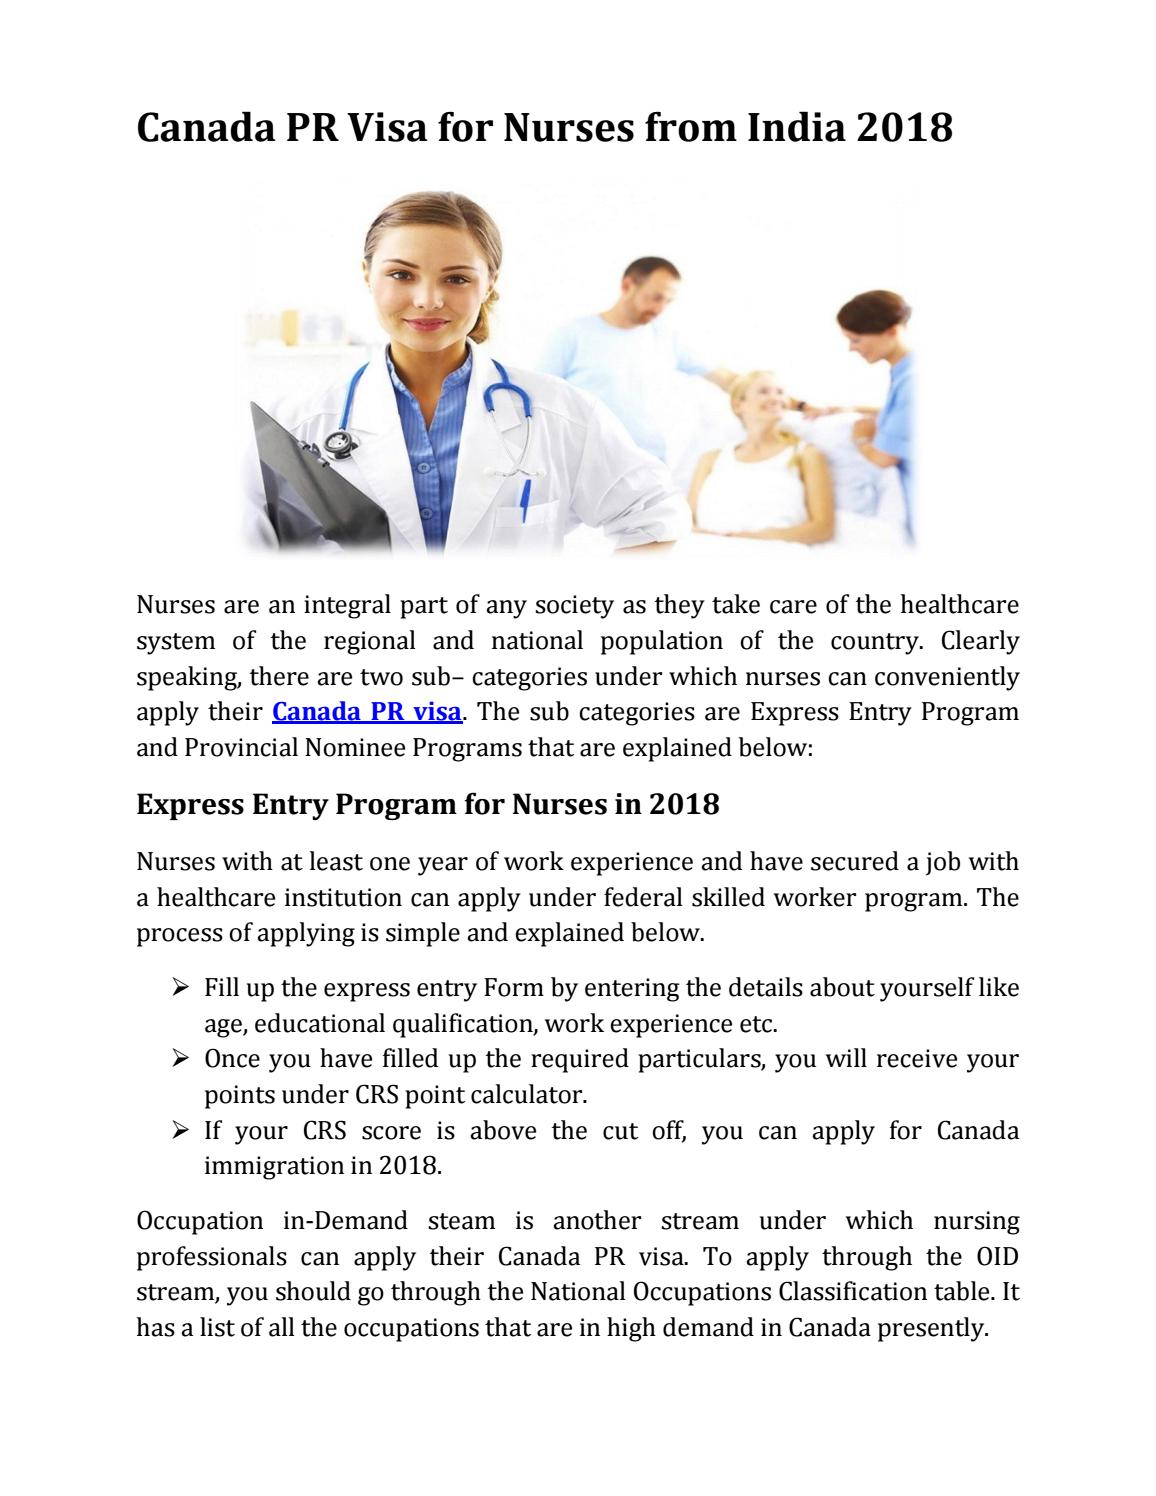 Canada Pr Visa For Nurses From India 2018 By Ap Immigration Pr Visa And Immigration Consultant For Canada Australia Issuu